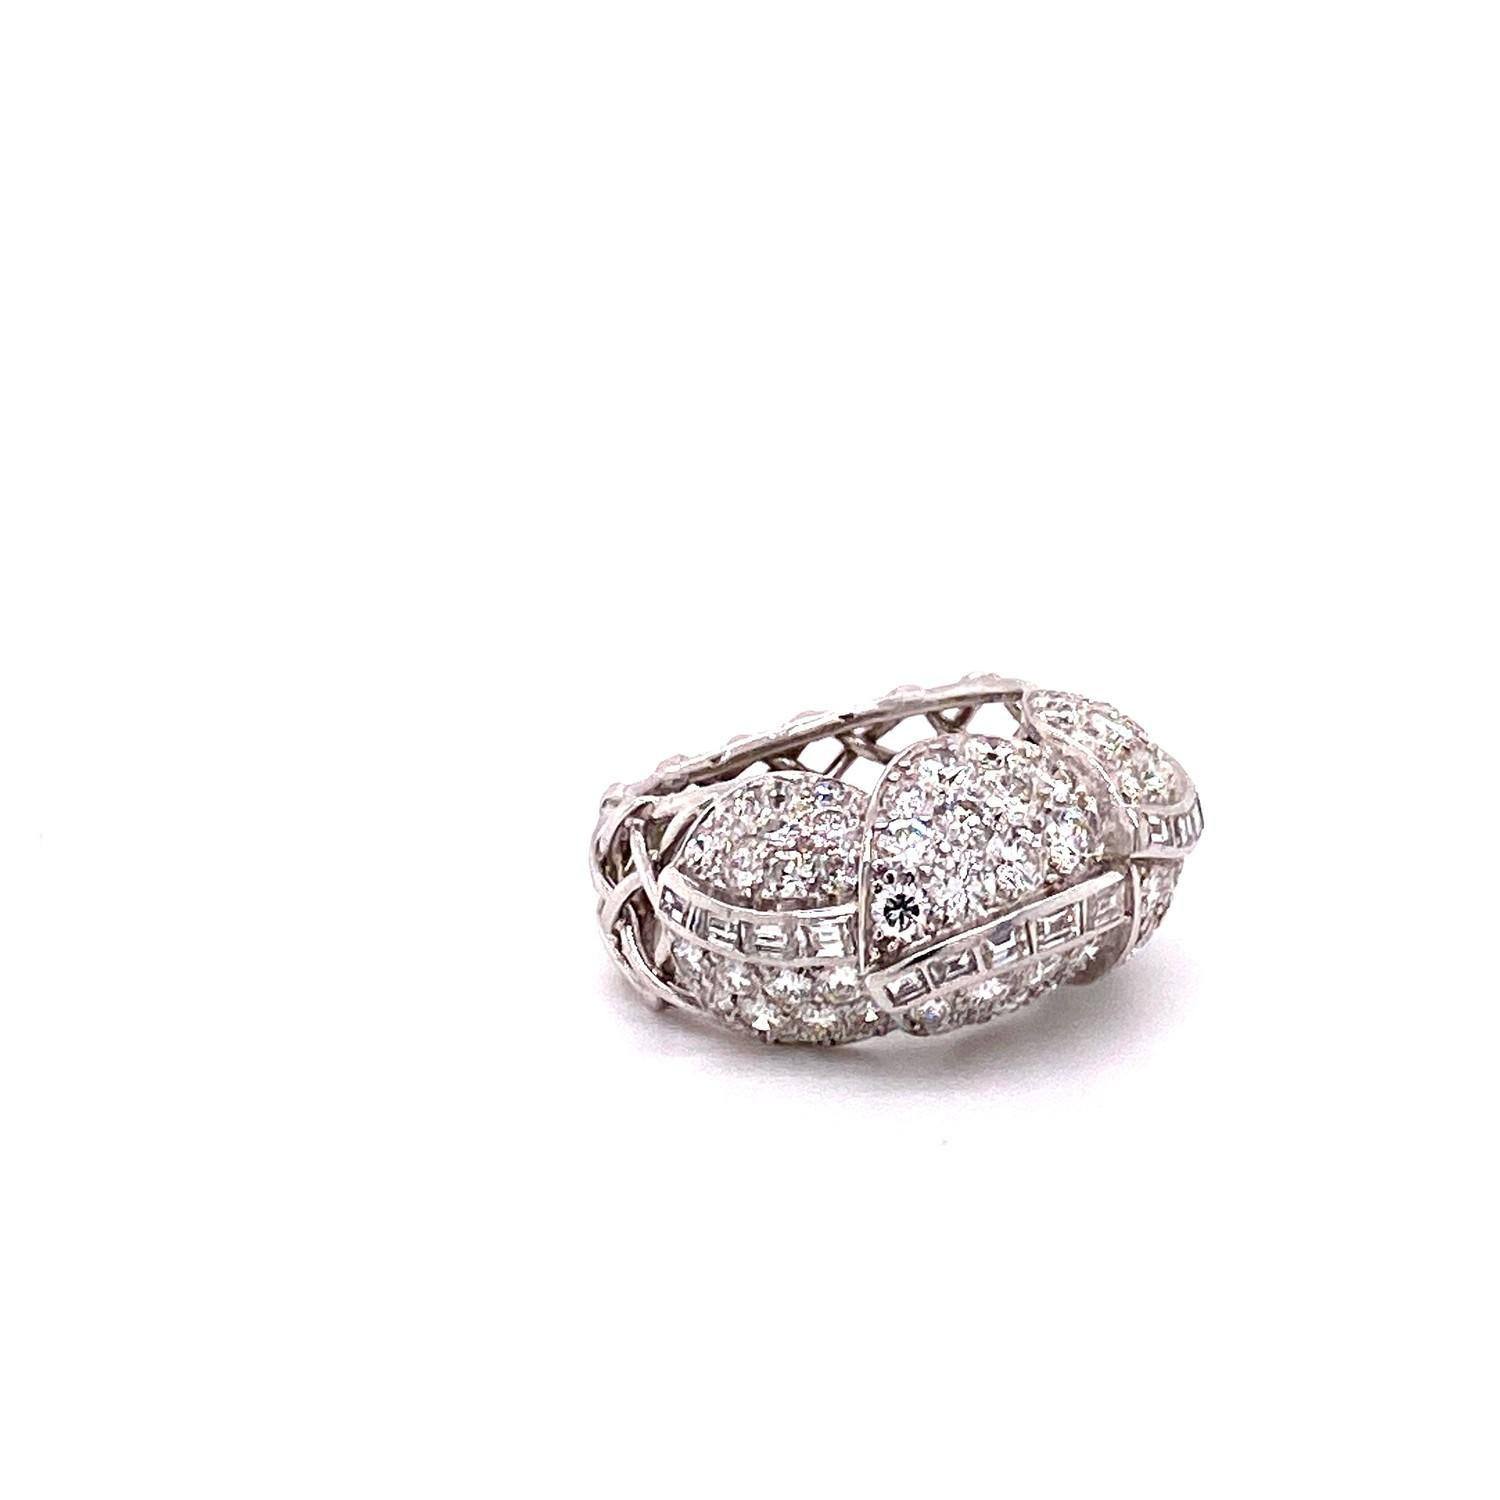 A 1950's Cartier Cocktail Ring, Cartier baguette and brilliant cut pave set dome top bombe ring - Image 5 of 8